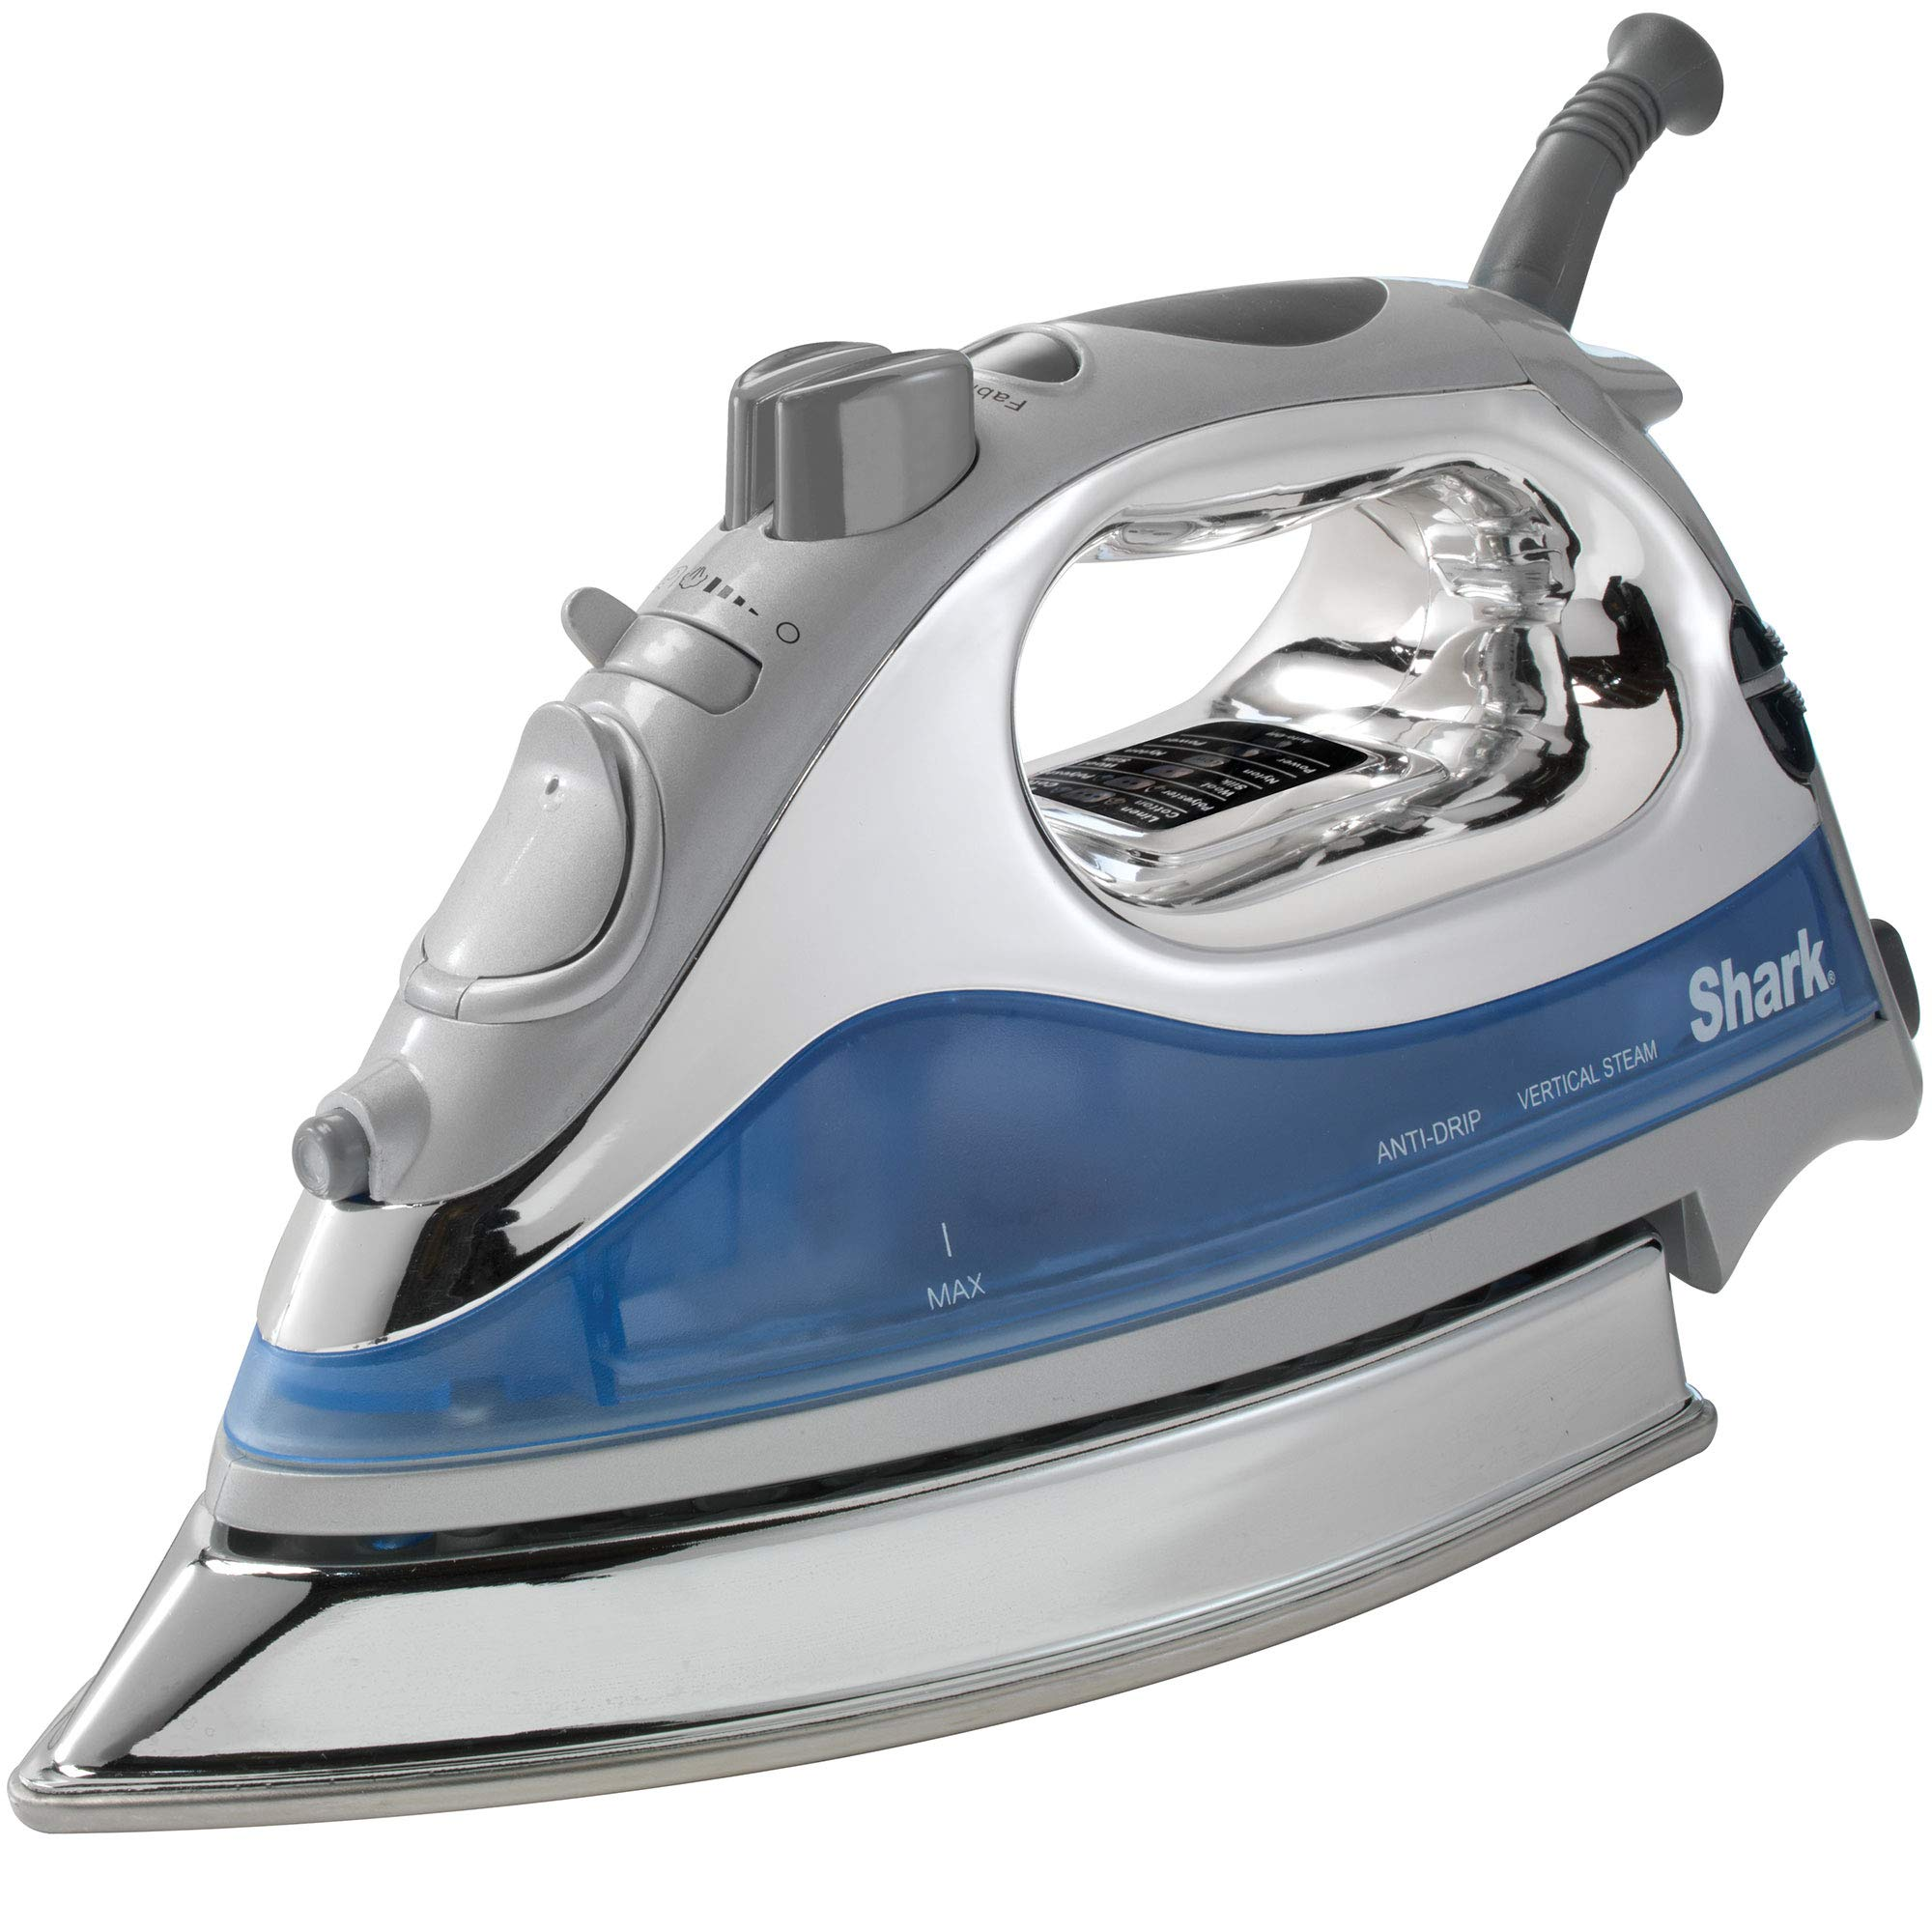 Shark Powerful Lightweight Professional Steam Iron auto-Off with Cord with 8.5'' Premium Stainless Steel Sole Plate and 1500 watts, Blue - GI468NN (Certified Refurbished)…